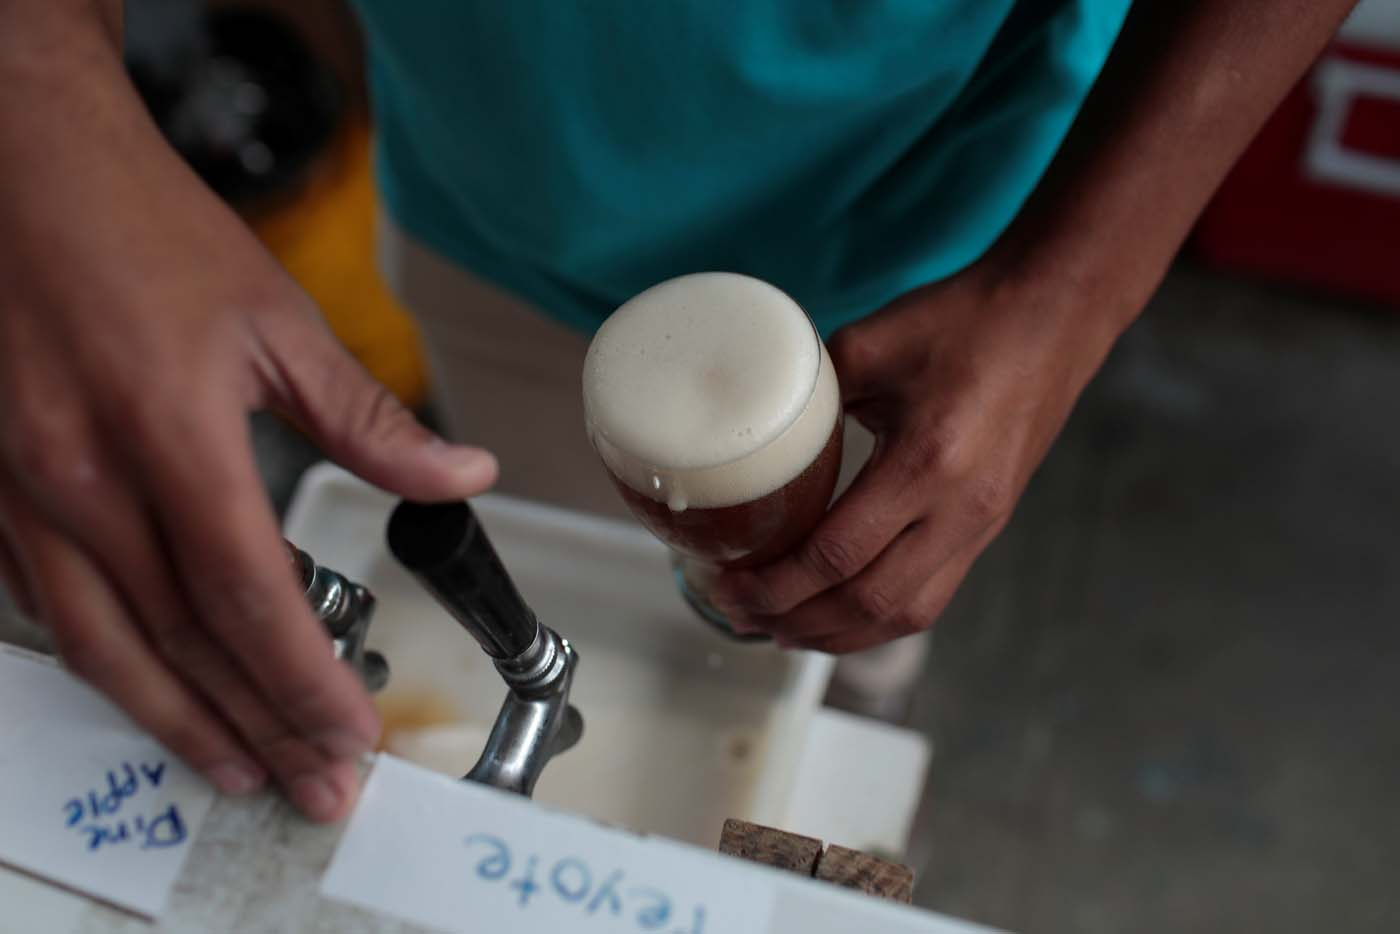 A worker drafts a glass of craft beer from a pump in a beer garden at the garage of Social Club brewery in Caracas, Venezuela, September 15, 2017. Picture taken September 15, 2017. REUTERS/Marco Bello